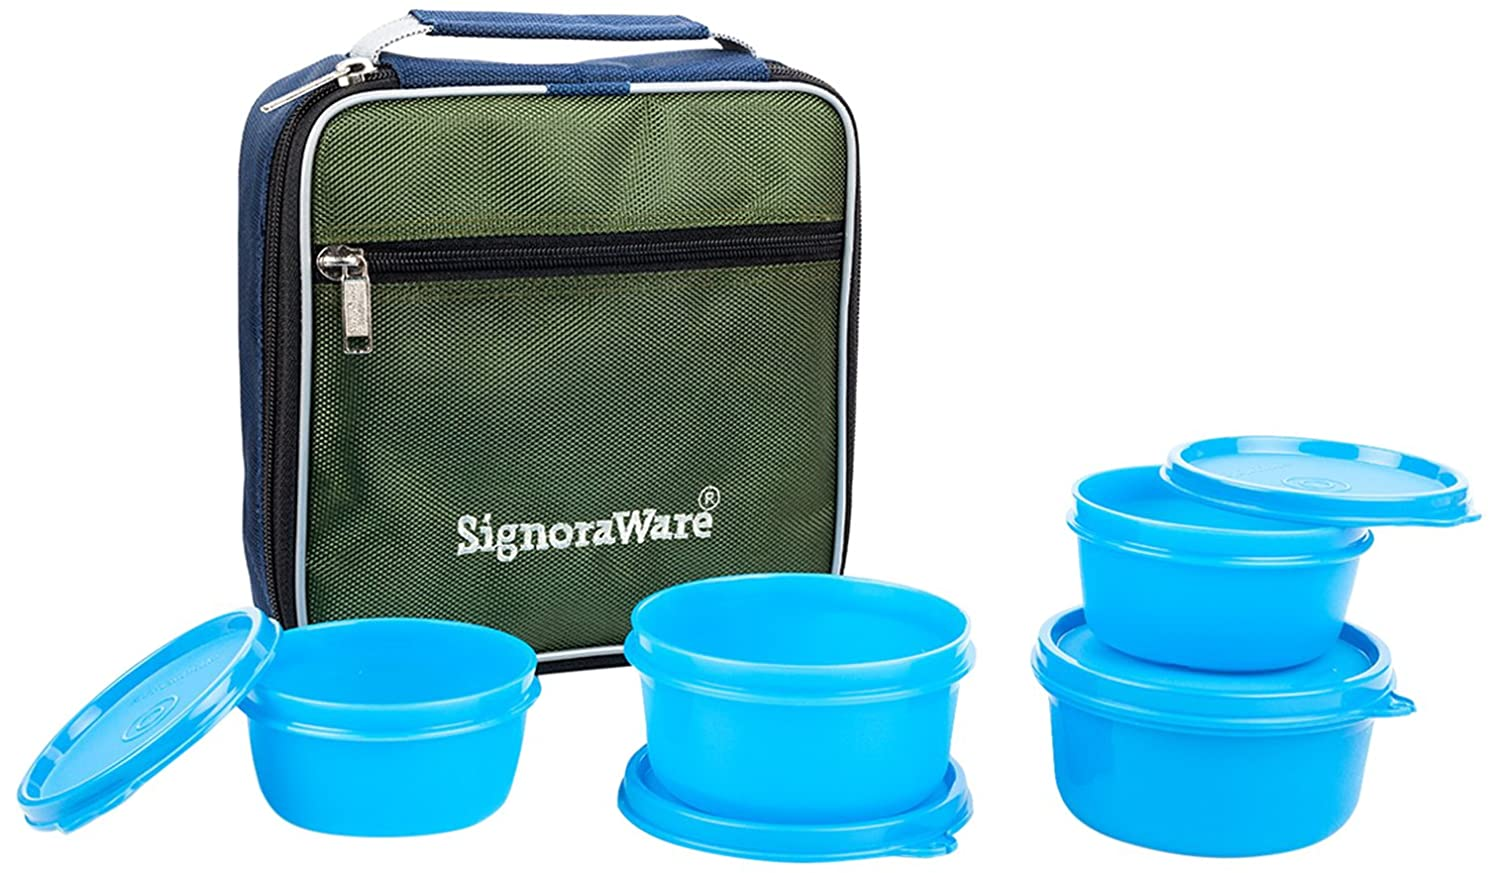 Signoraware Fresh Lunch Box with Bag, Blue